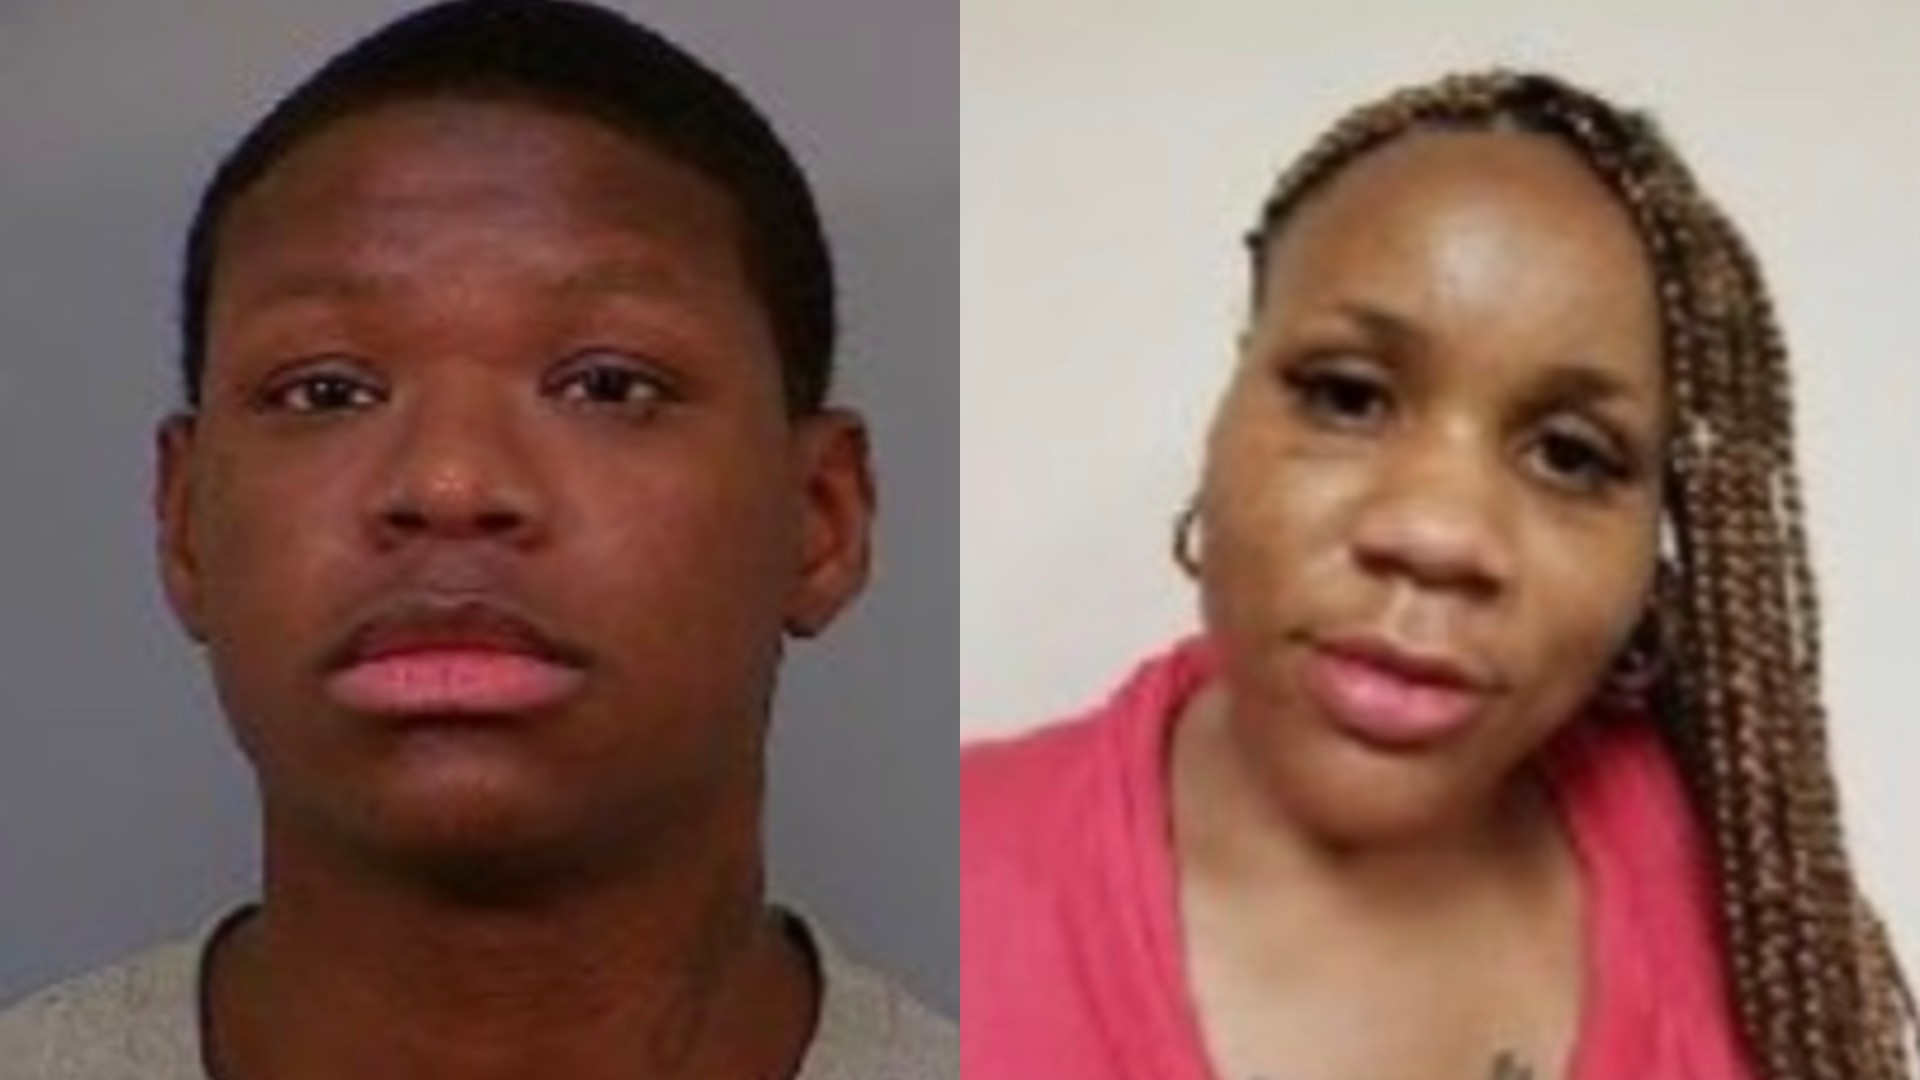 Damaris Wade, left, and Tamika White, right, are seen in photos released by the Los Angeles County Sheriff's Department.